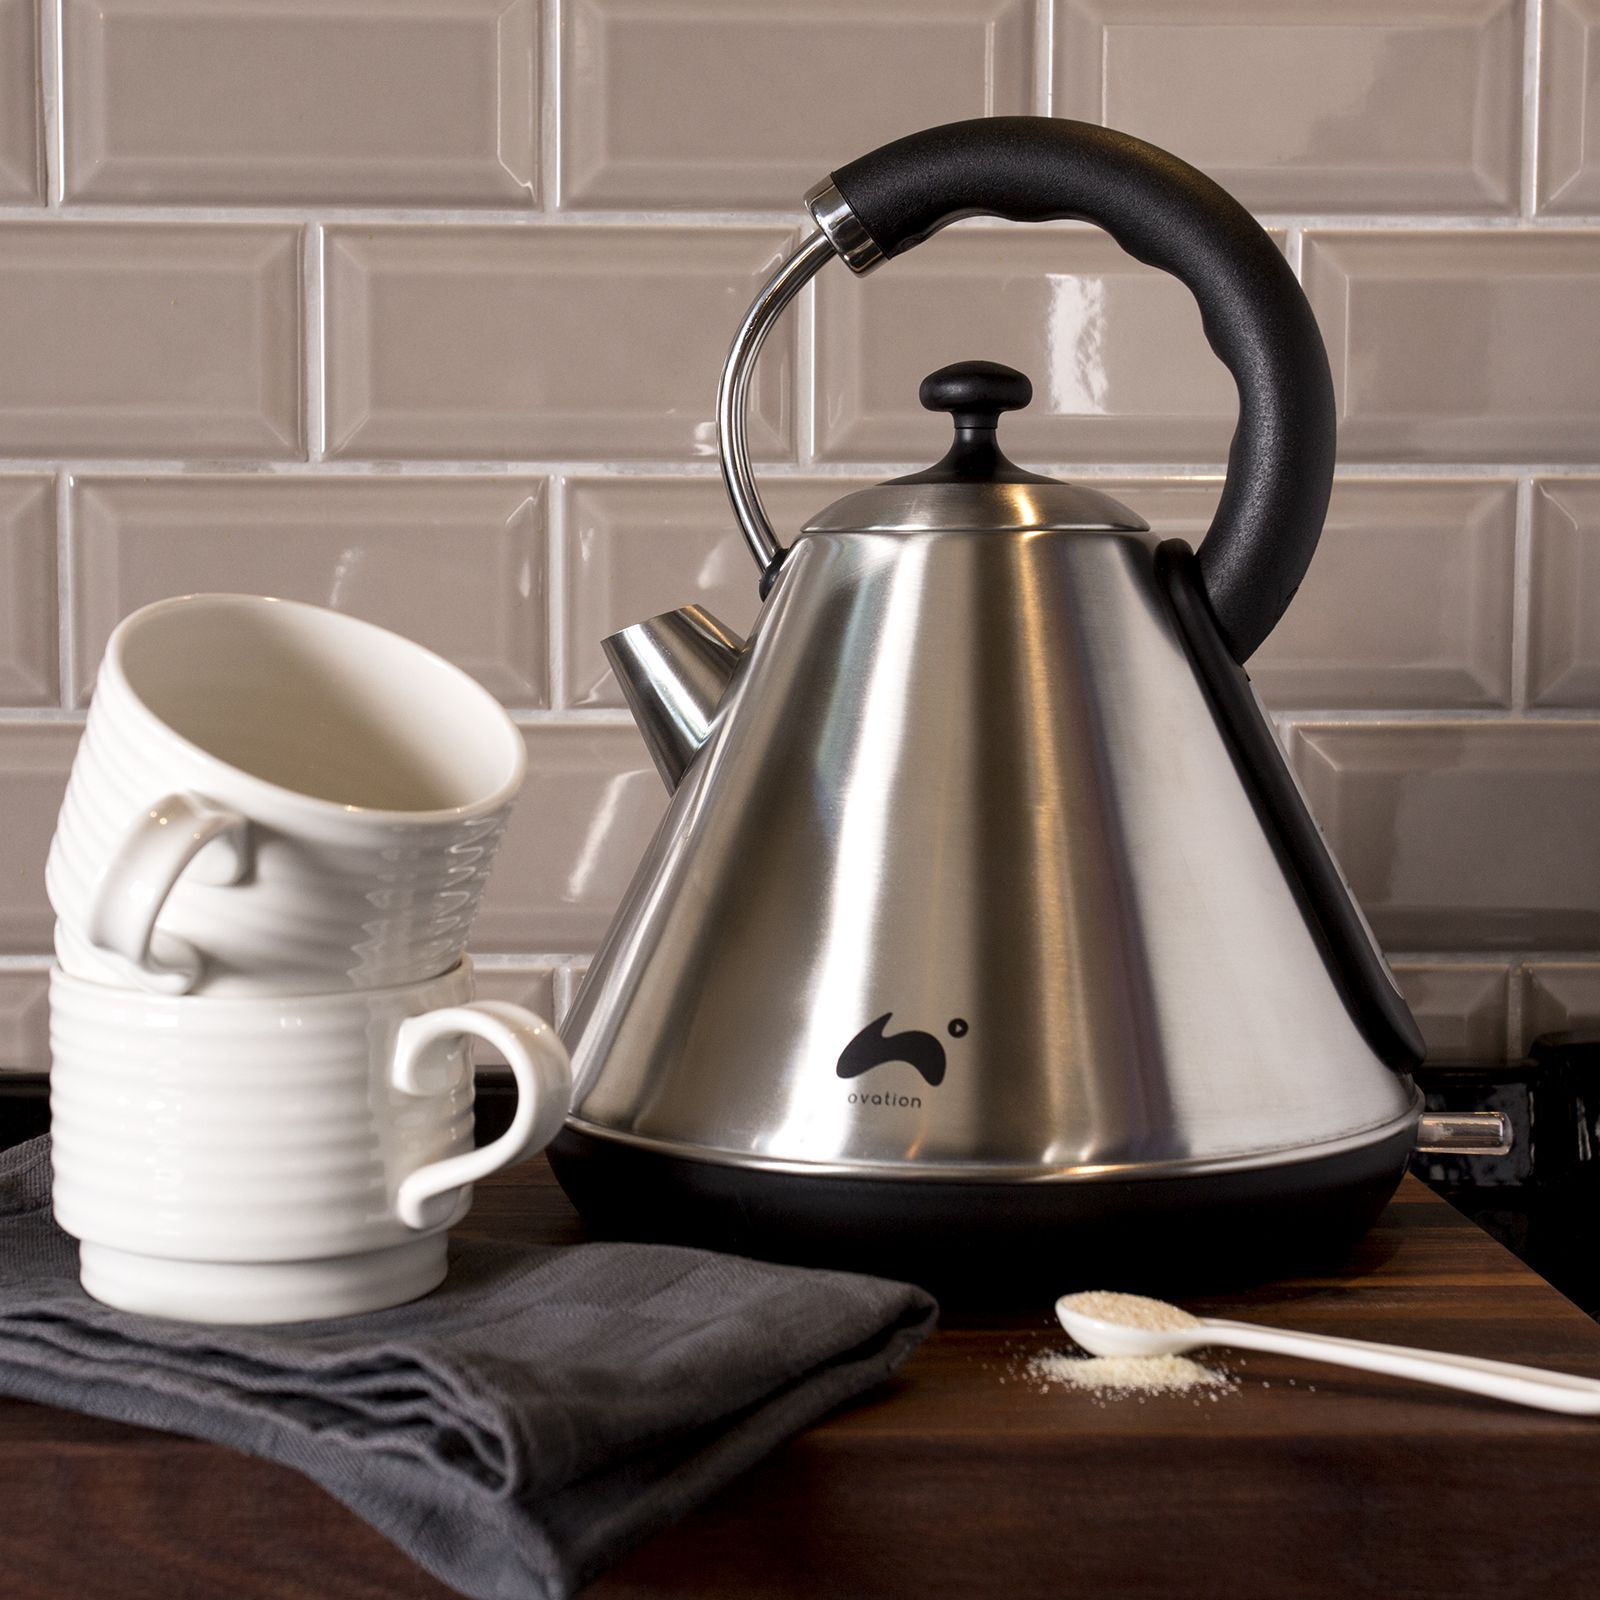 ovation pyramid kettle 1 8l stainless steel kettle steel and